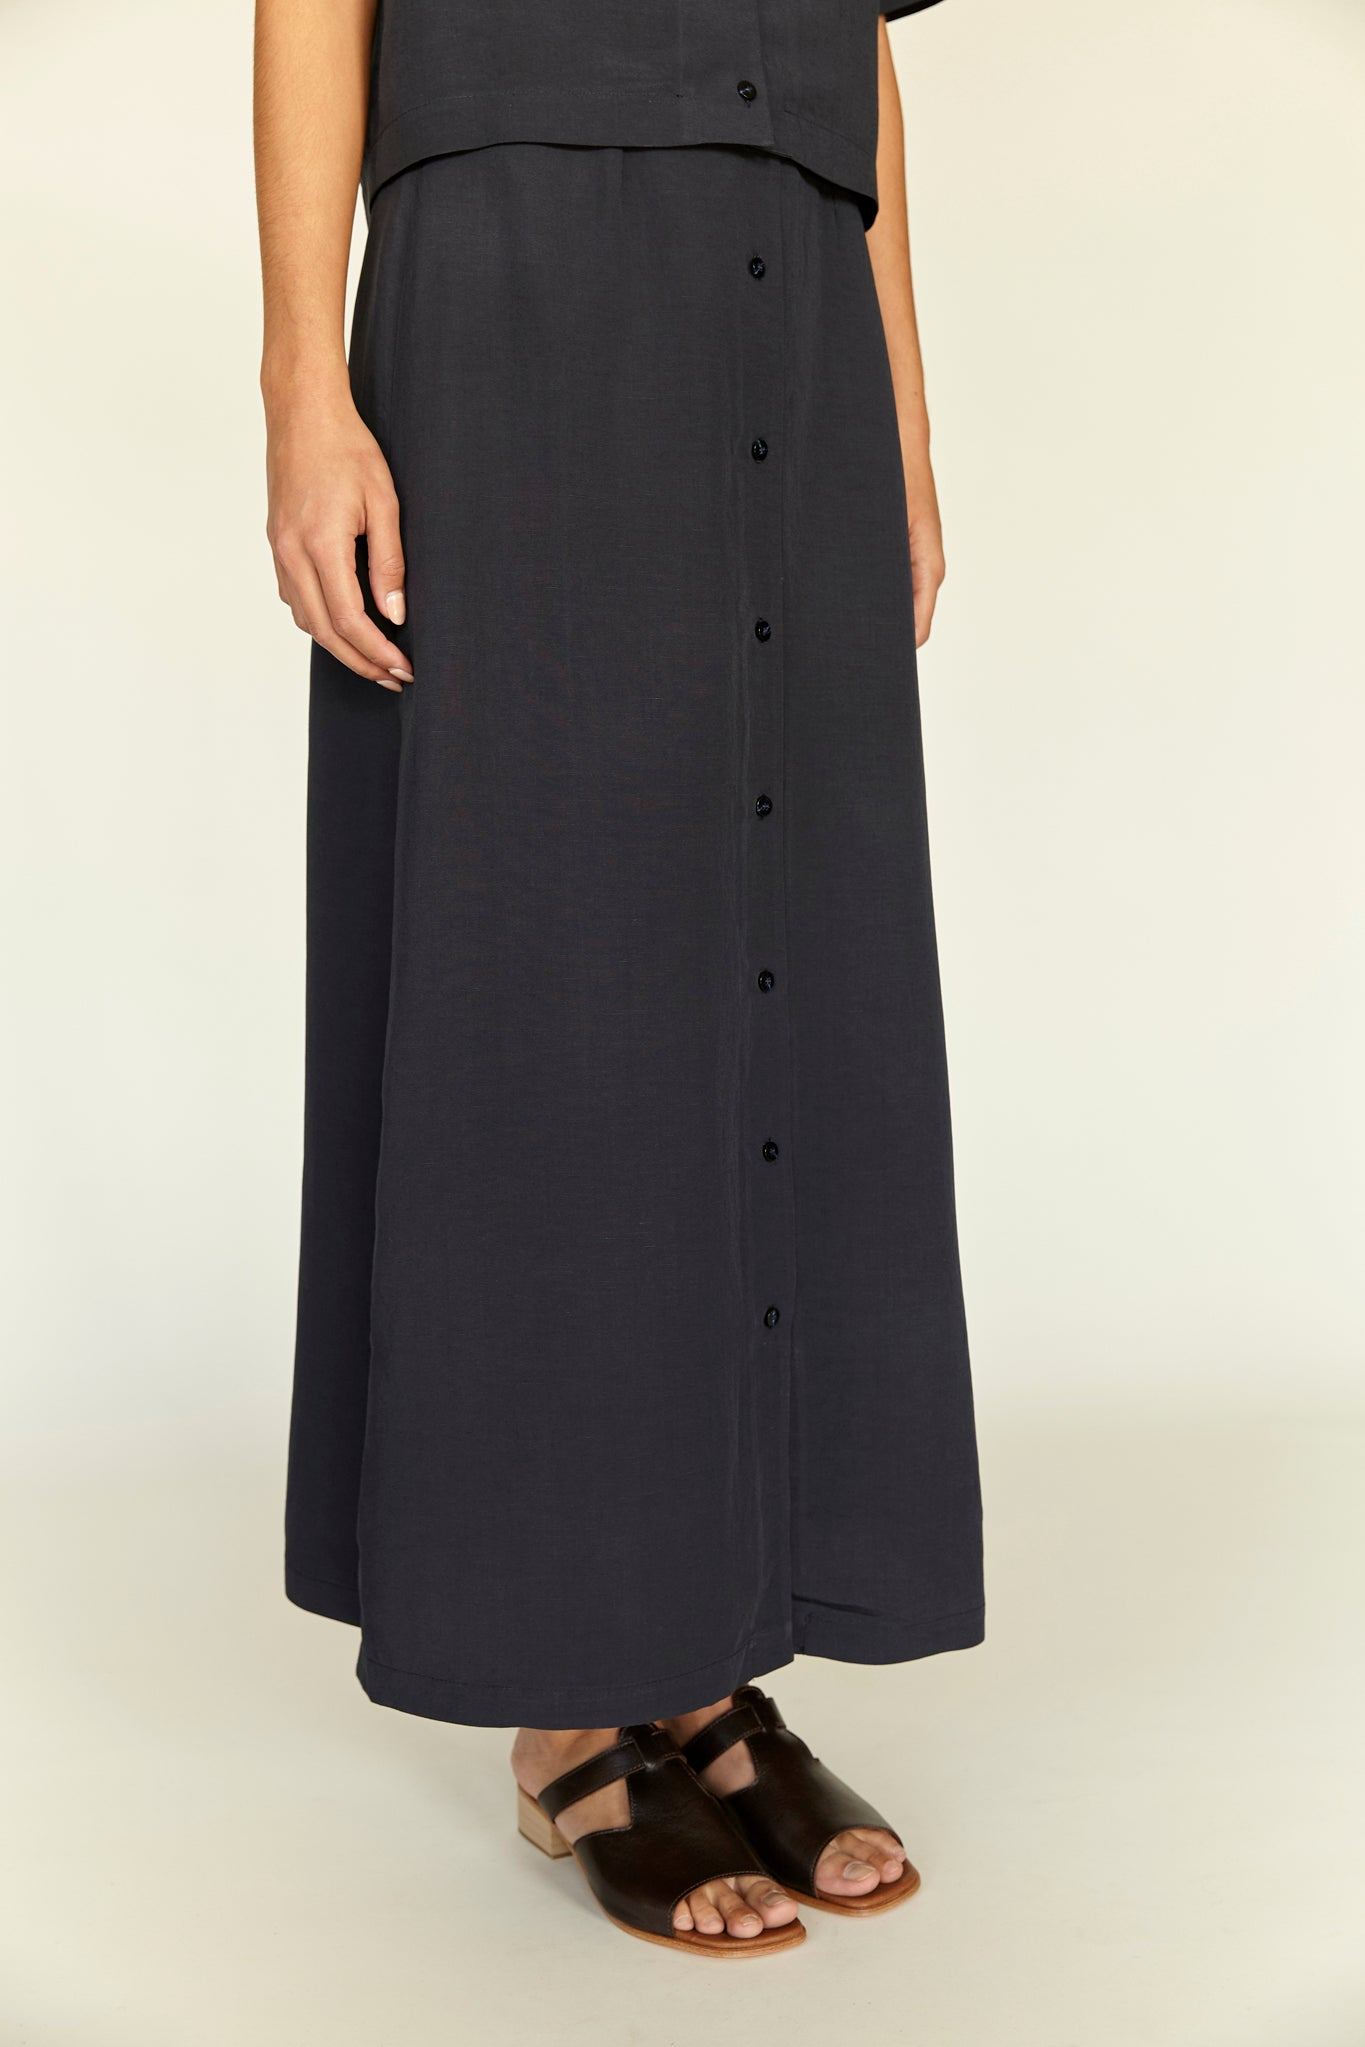 Long Button Up Skirt - Navy